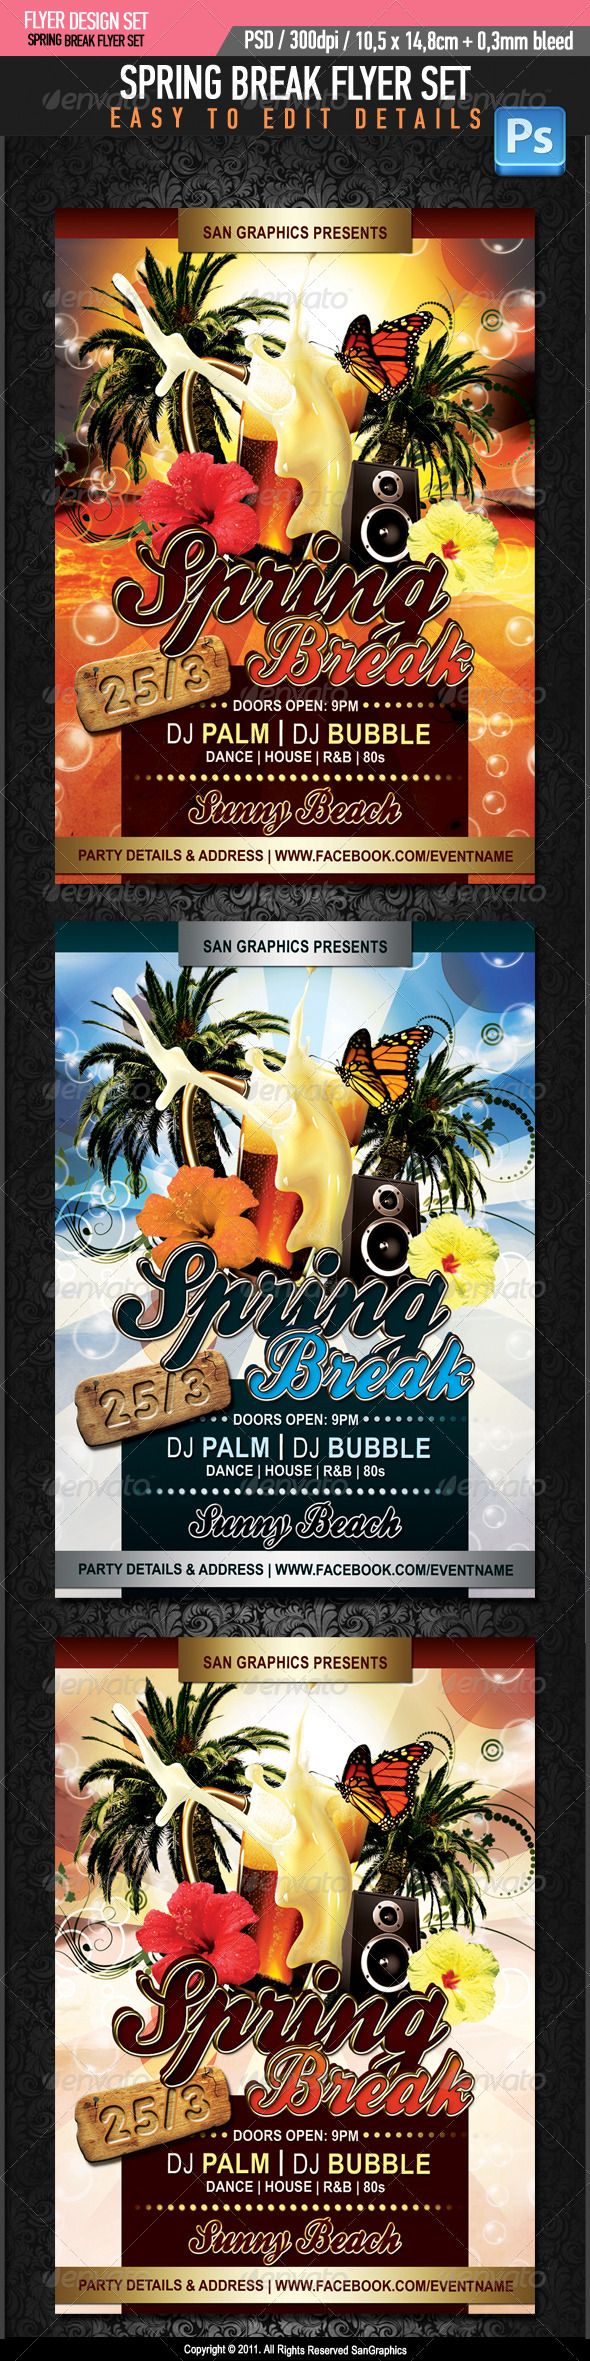 Spring Break Beer Flyer  #GraphicRiver         Spring Break Beer Flyer     • Simple and organized PSD files in Layers  • 300 DPI  • Easy to use  • CMYK  • Print Ready with Bleed Margins 0.3mm  • Dimensions 10,4×14,8cm  • Fonts used:     Arial    Ballpark   .dafont /ballpark-weiner.font  Debussy   .dafont /debussy.font   (Please don't forget to rate this item if you like it, thanks!)     For more graphics, visit San Graphics                                           Created: 1March12 GraphicsFilesIncluded: PhotoshopPSD Layered: Yes MinimumAdobeCSVersion: CS3 PrintDimensions: 10.4×14.8 Tags: San #beach #beer #bubbles #butterfly #class #club #college #event #flyer #graphics #greak #holiday #night #palm #party #school #spring #sun #template #tree #university